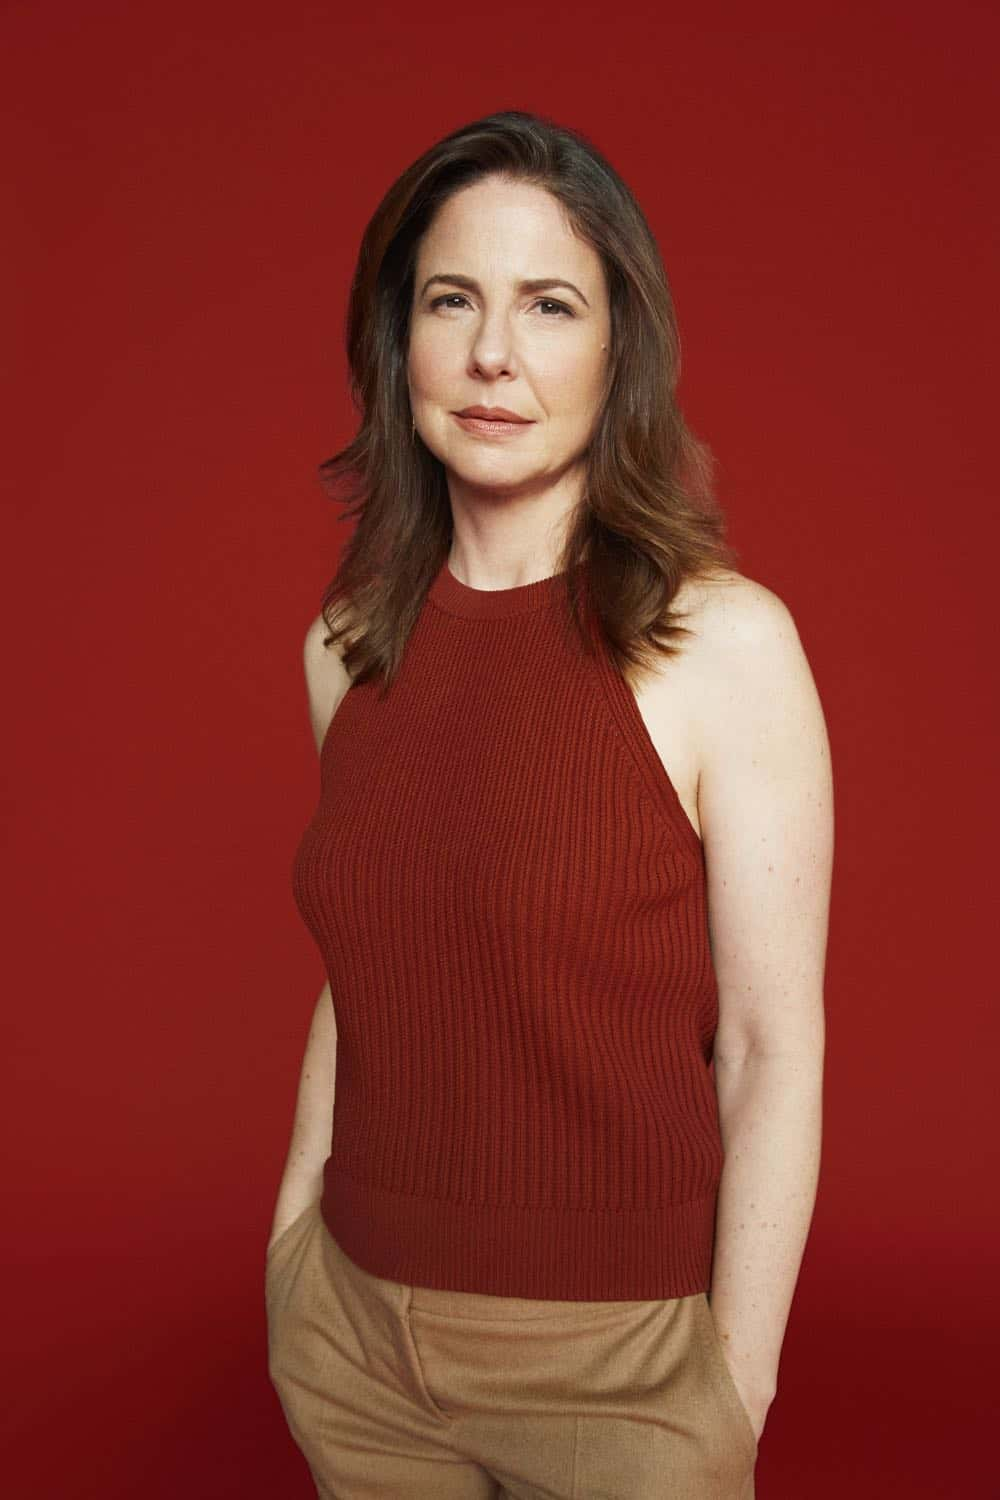 Robin Weigert as Verena - Dietland _ Season 1, Gallery - Photo Credit: Erik Madigan Heck/AMC